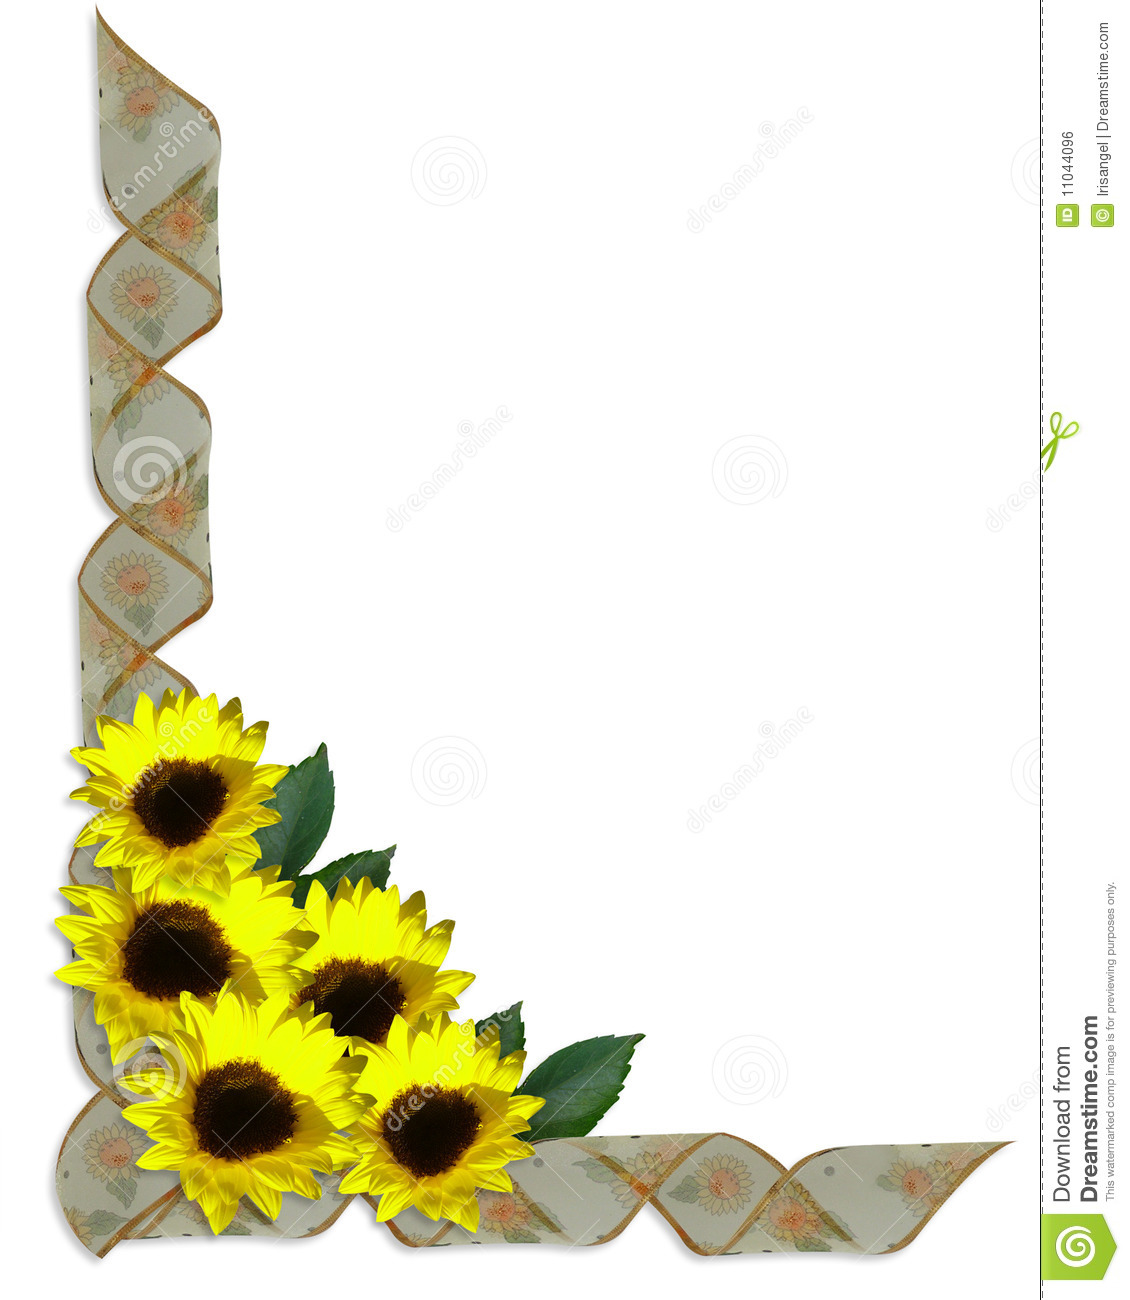 Floral Corner Design Sunflowers Ribbons Royalty Free Stock